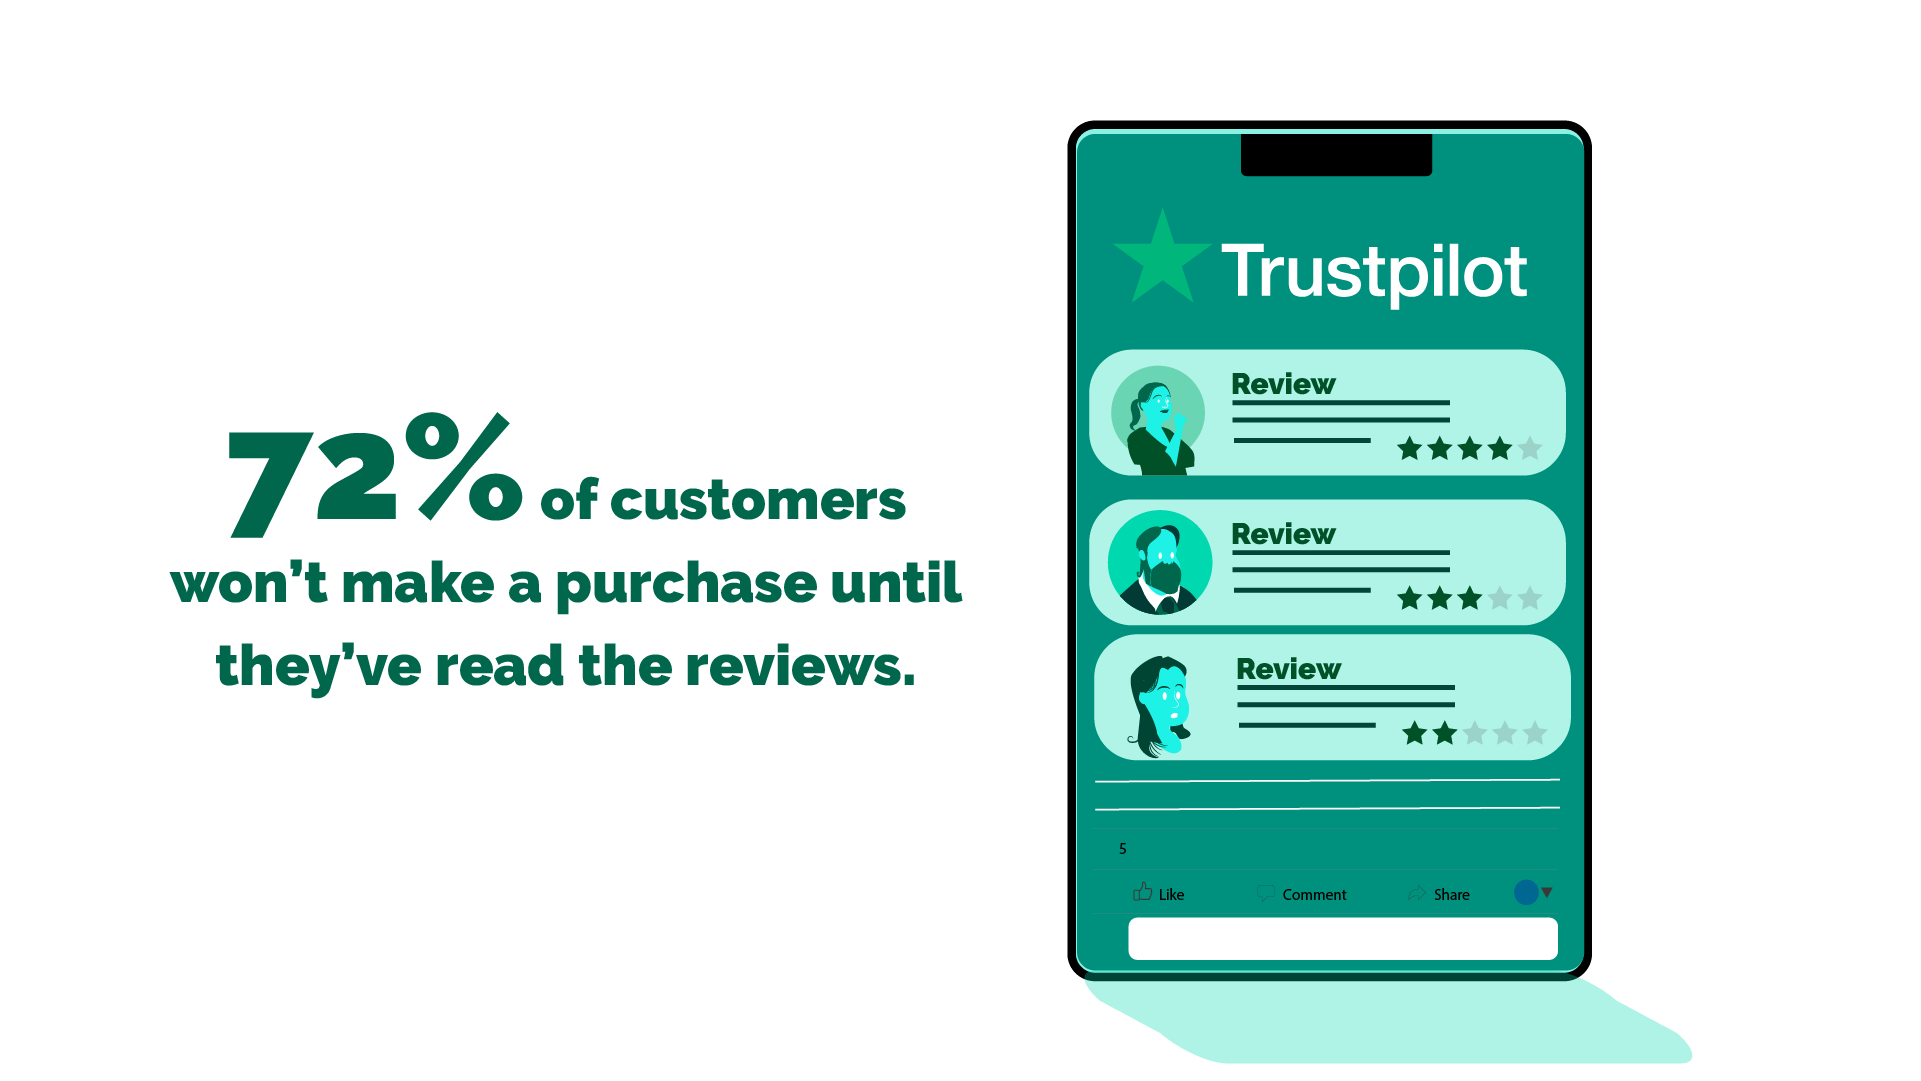 72% of customers won't make a purchase until they've read the reviews.